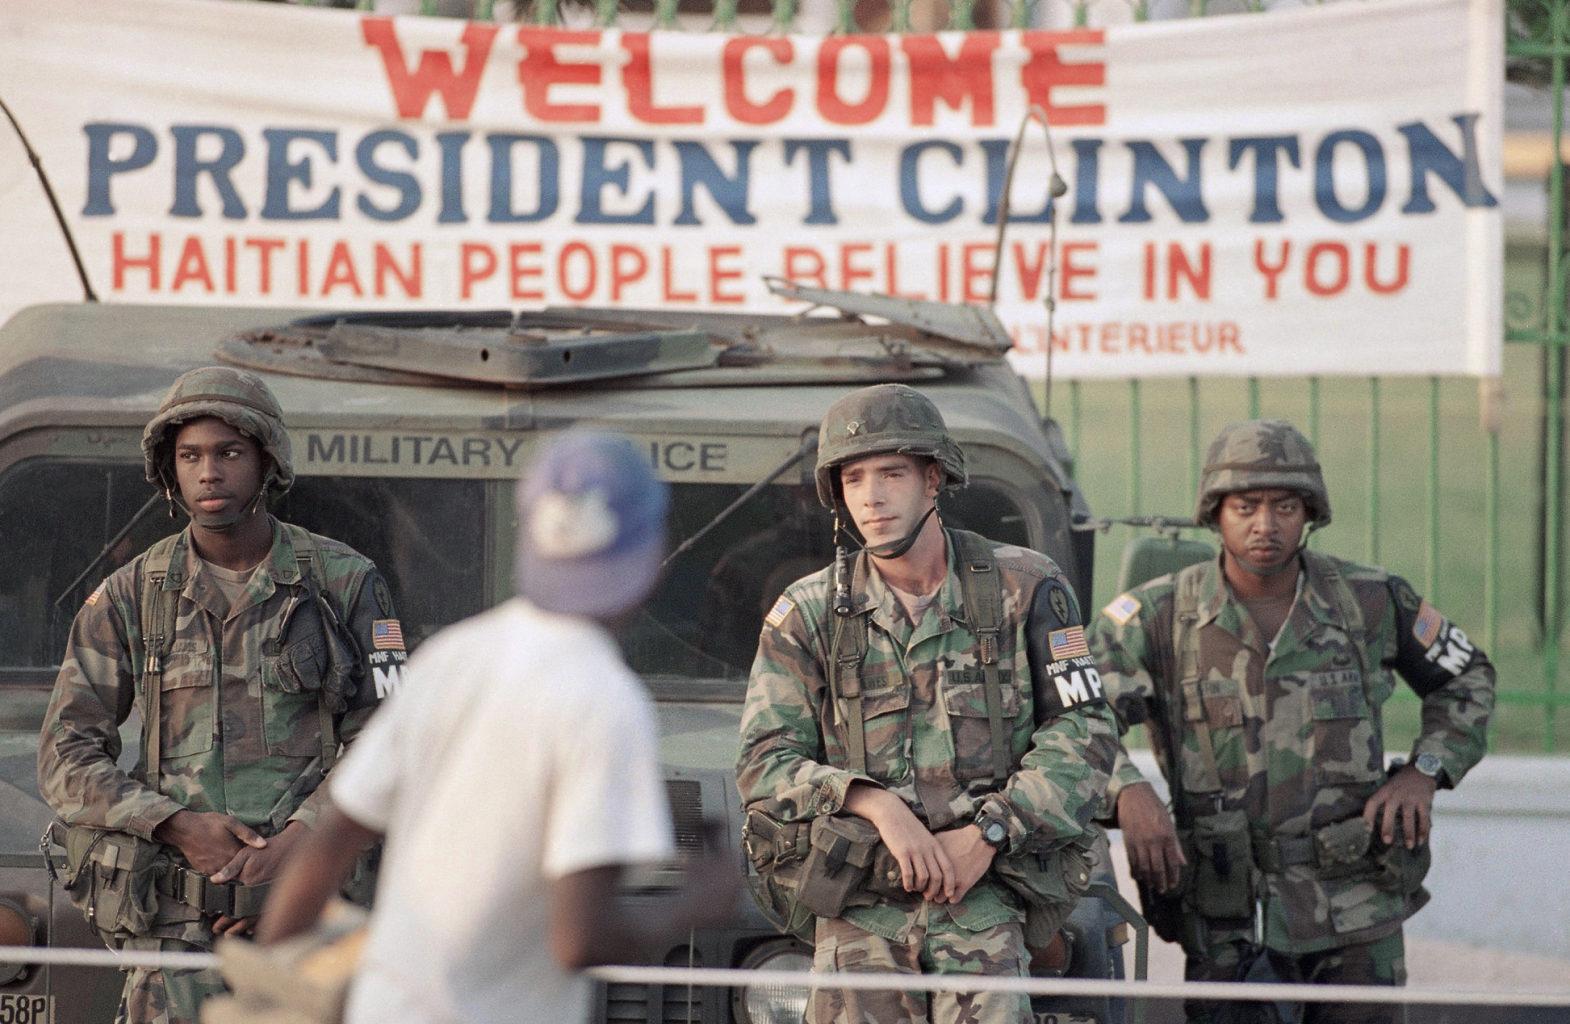 25th Division Military Police in Haiti as part of the multinational force,1994